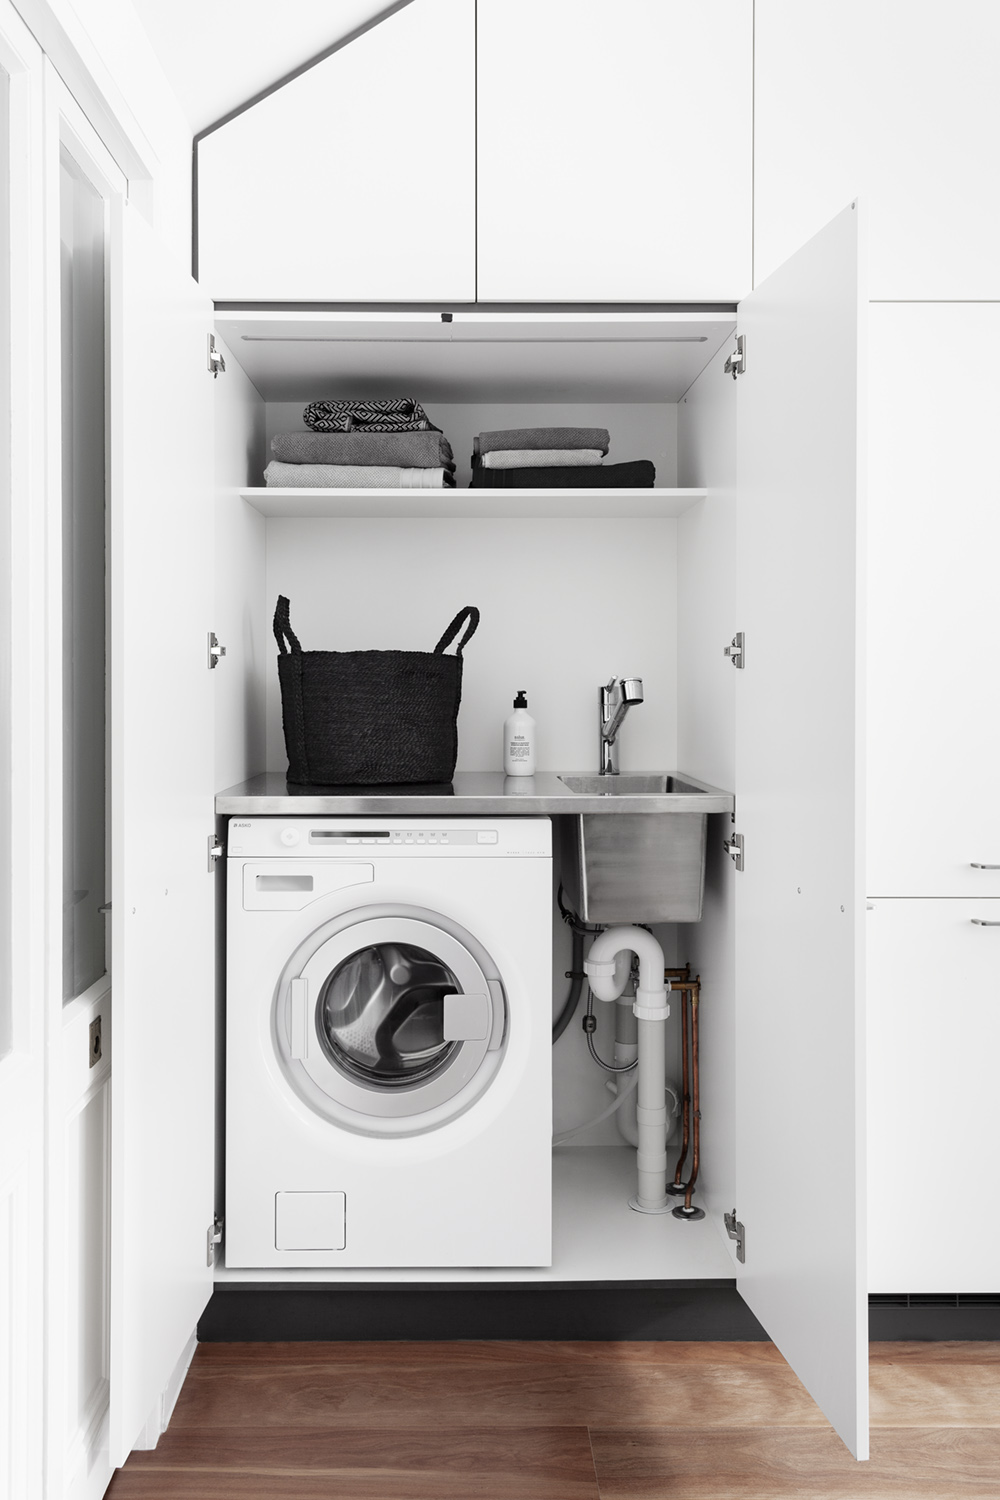 Design Tip:    For euro laundries and compact spaces, consider a stainless steel bench top with integrated sink. Not only will it cope better with frequent exposure to laundry agents not recommended for stone but the whole surface can be utilised as a wet area.